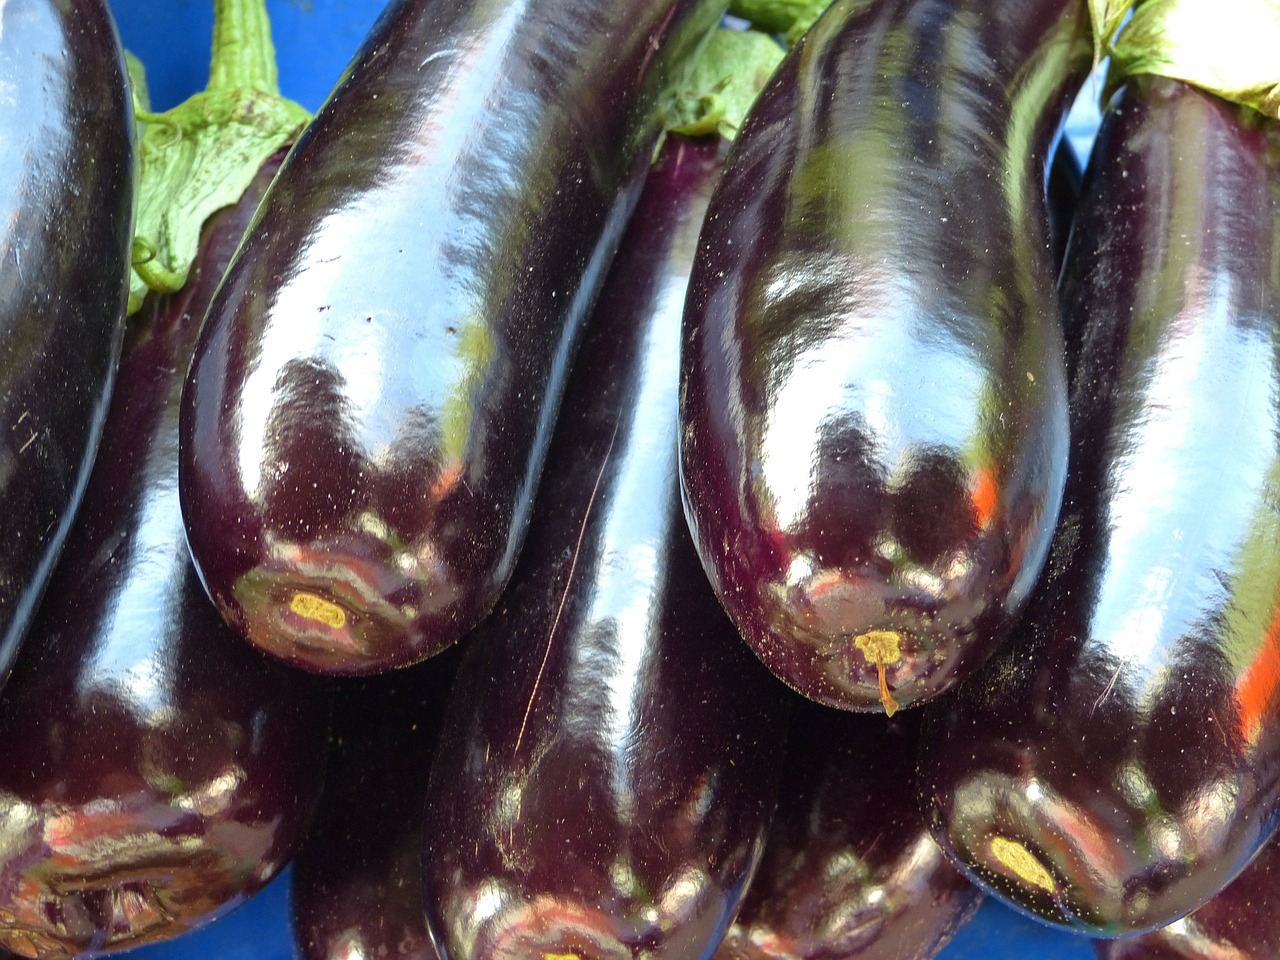 is aubergine groente of fruit